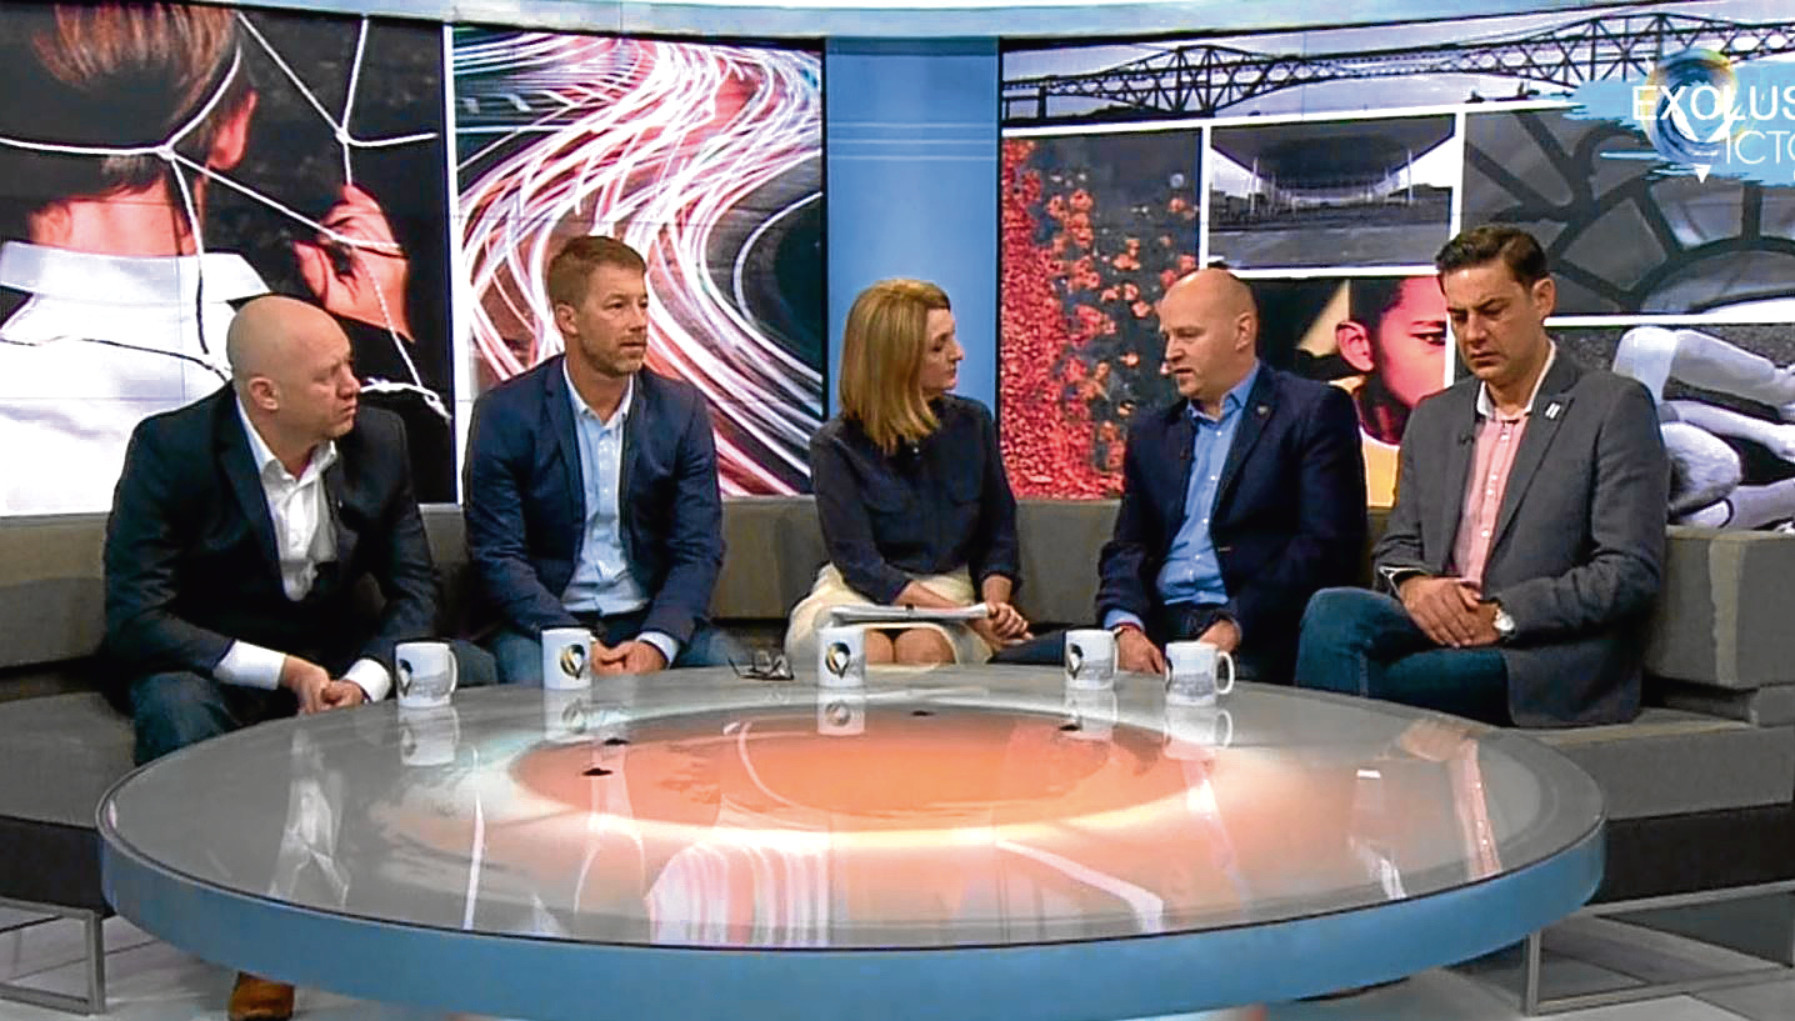 Four footballers who claim to have been sexually abused by Barry Bennell appeared on TV to talk about their experiences (BBC)